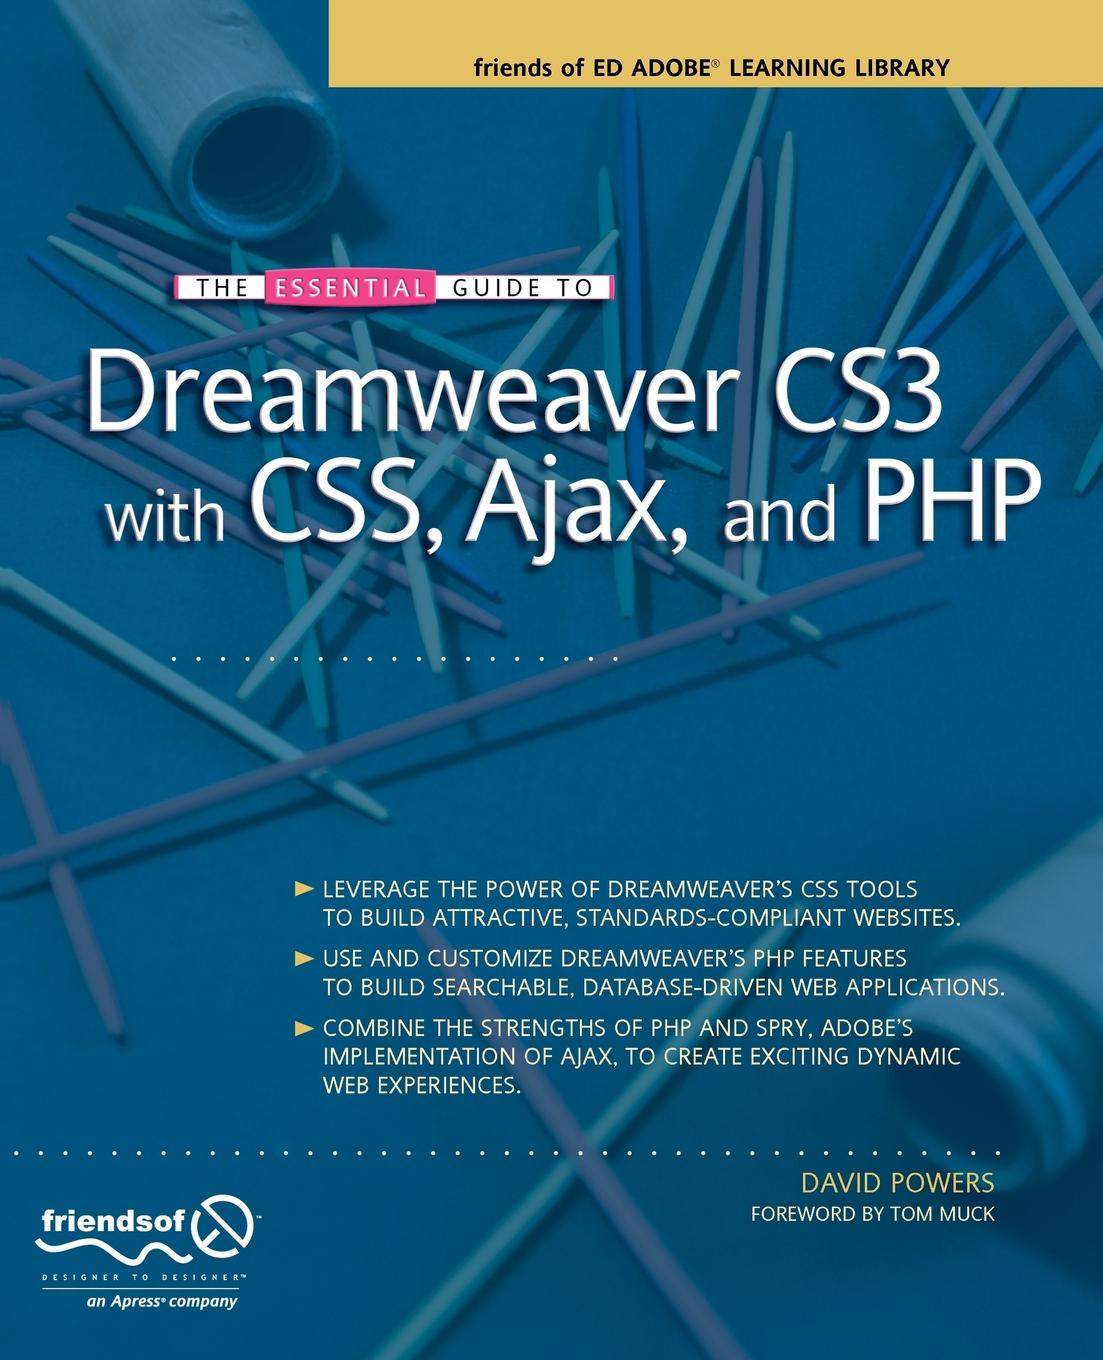 David Powers The Essential Guide to Dreamweaver Cs3 with CSS, Ajax, and PHP geoff daniels essential guide to blood groups